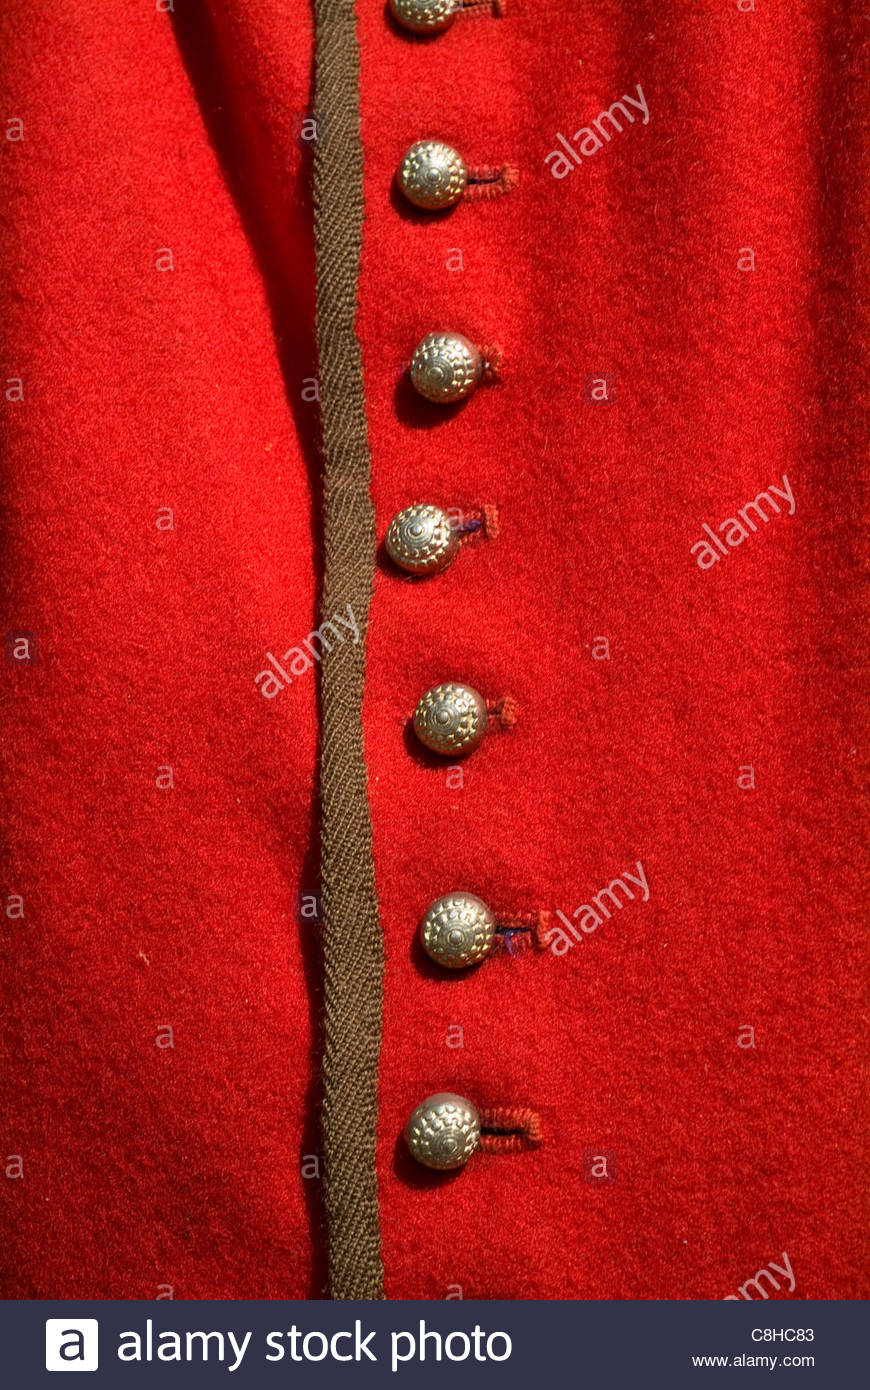 Jamestown Settlement close up details of clothing worn by first settlers. - Stock Image